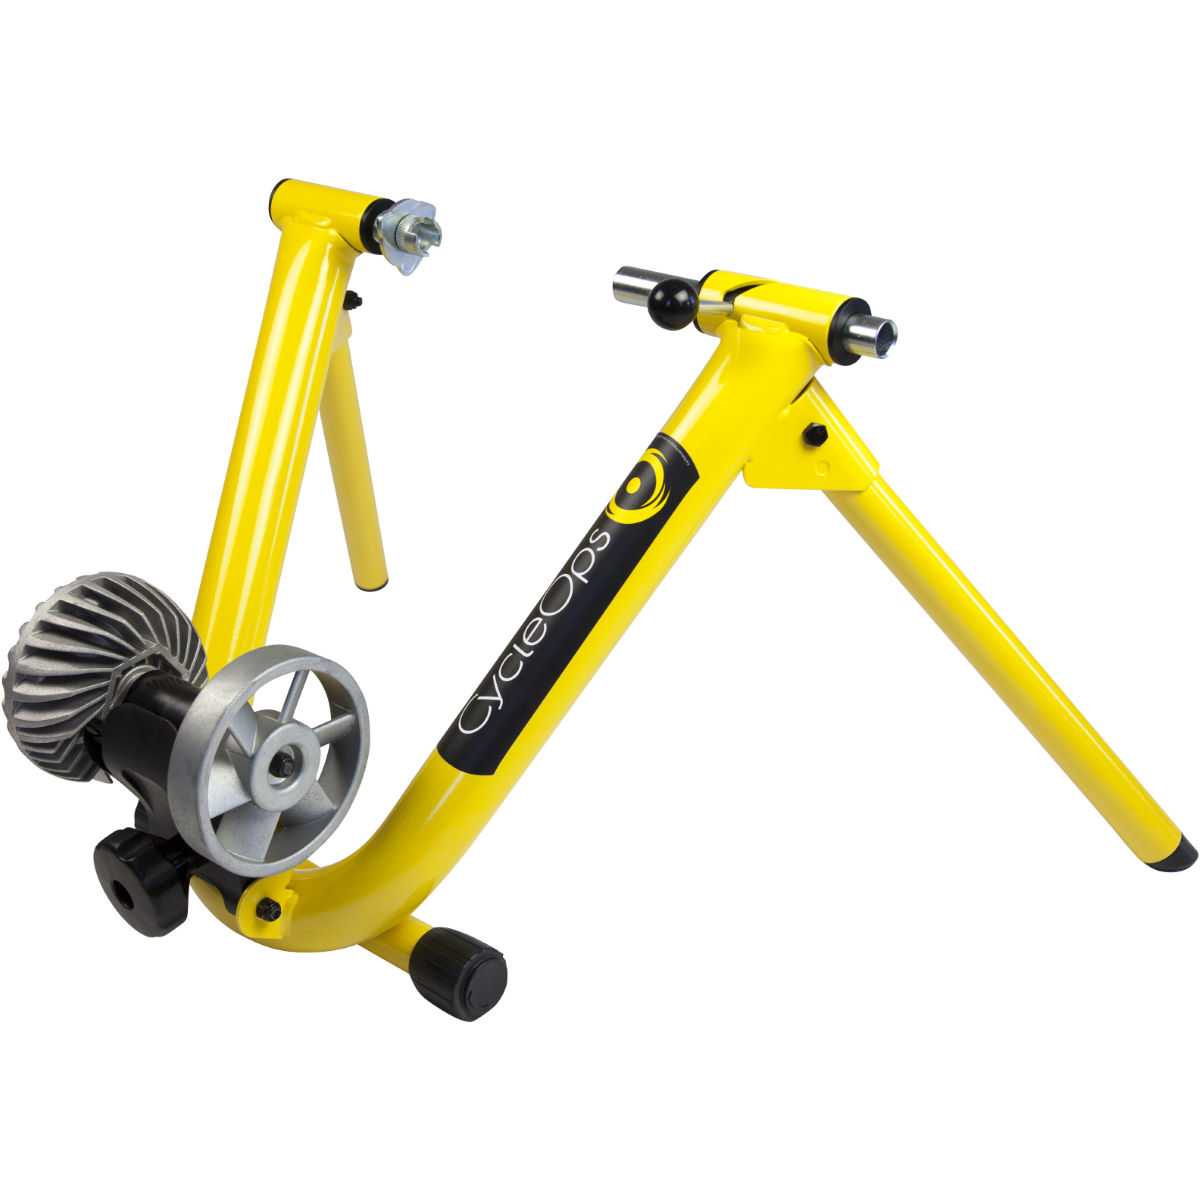 Home Trainer CycleOps Basic Fluid - Taille unique Jaune